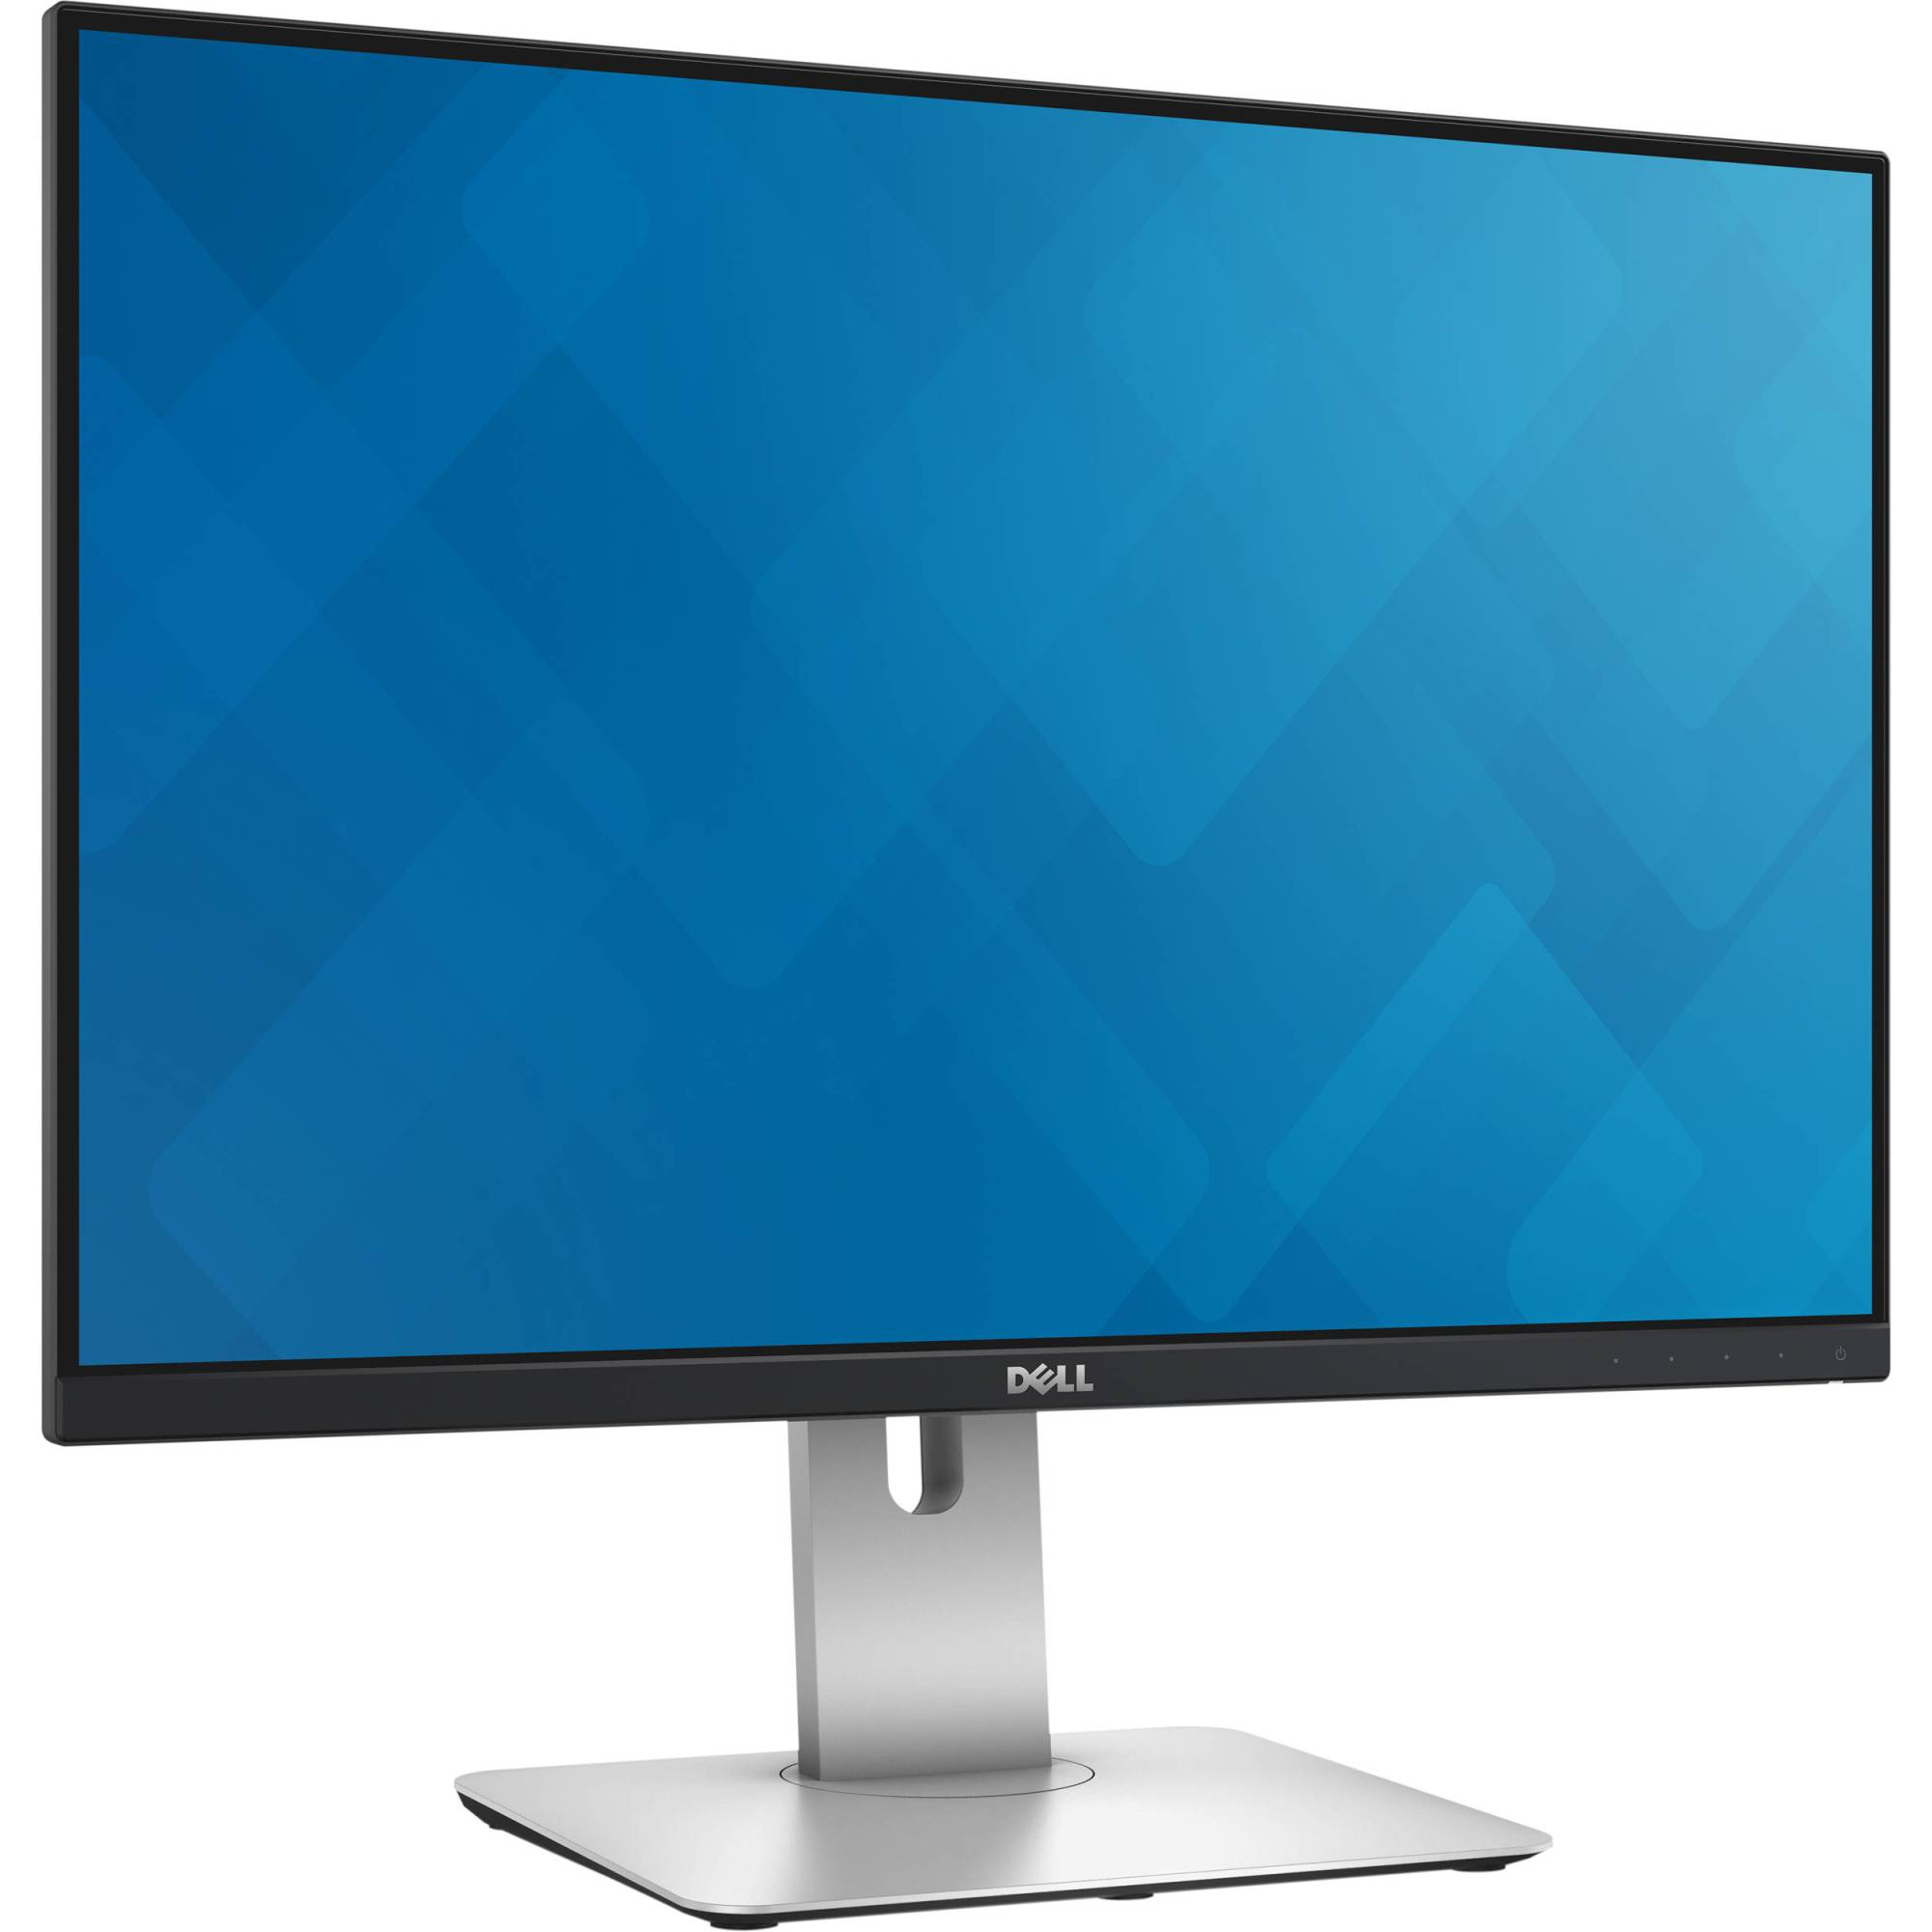 hight resolution of dell u2415 24 widescreen led backlit ips monitor